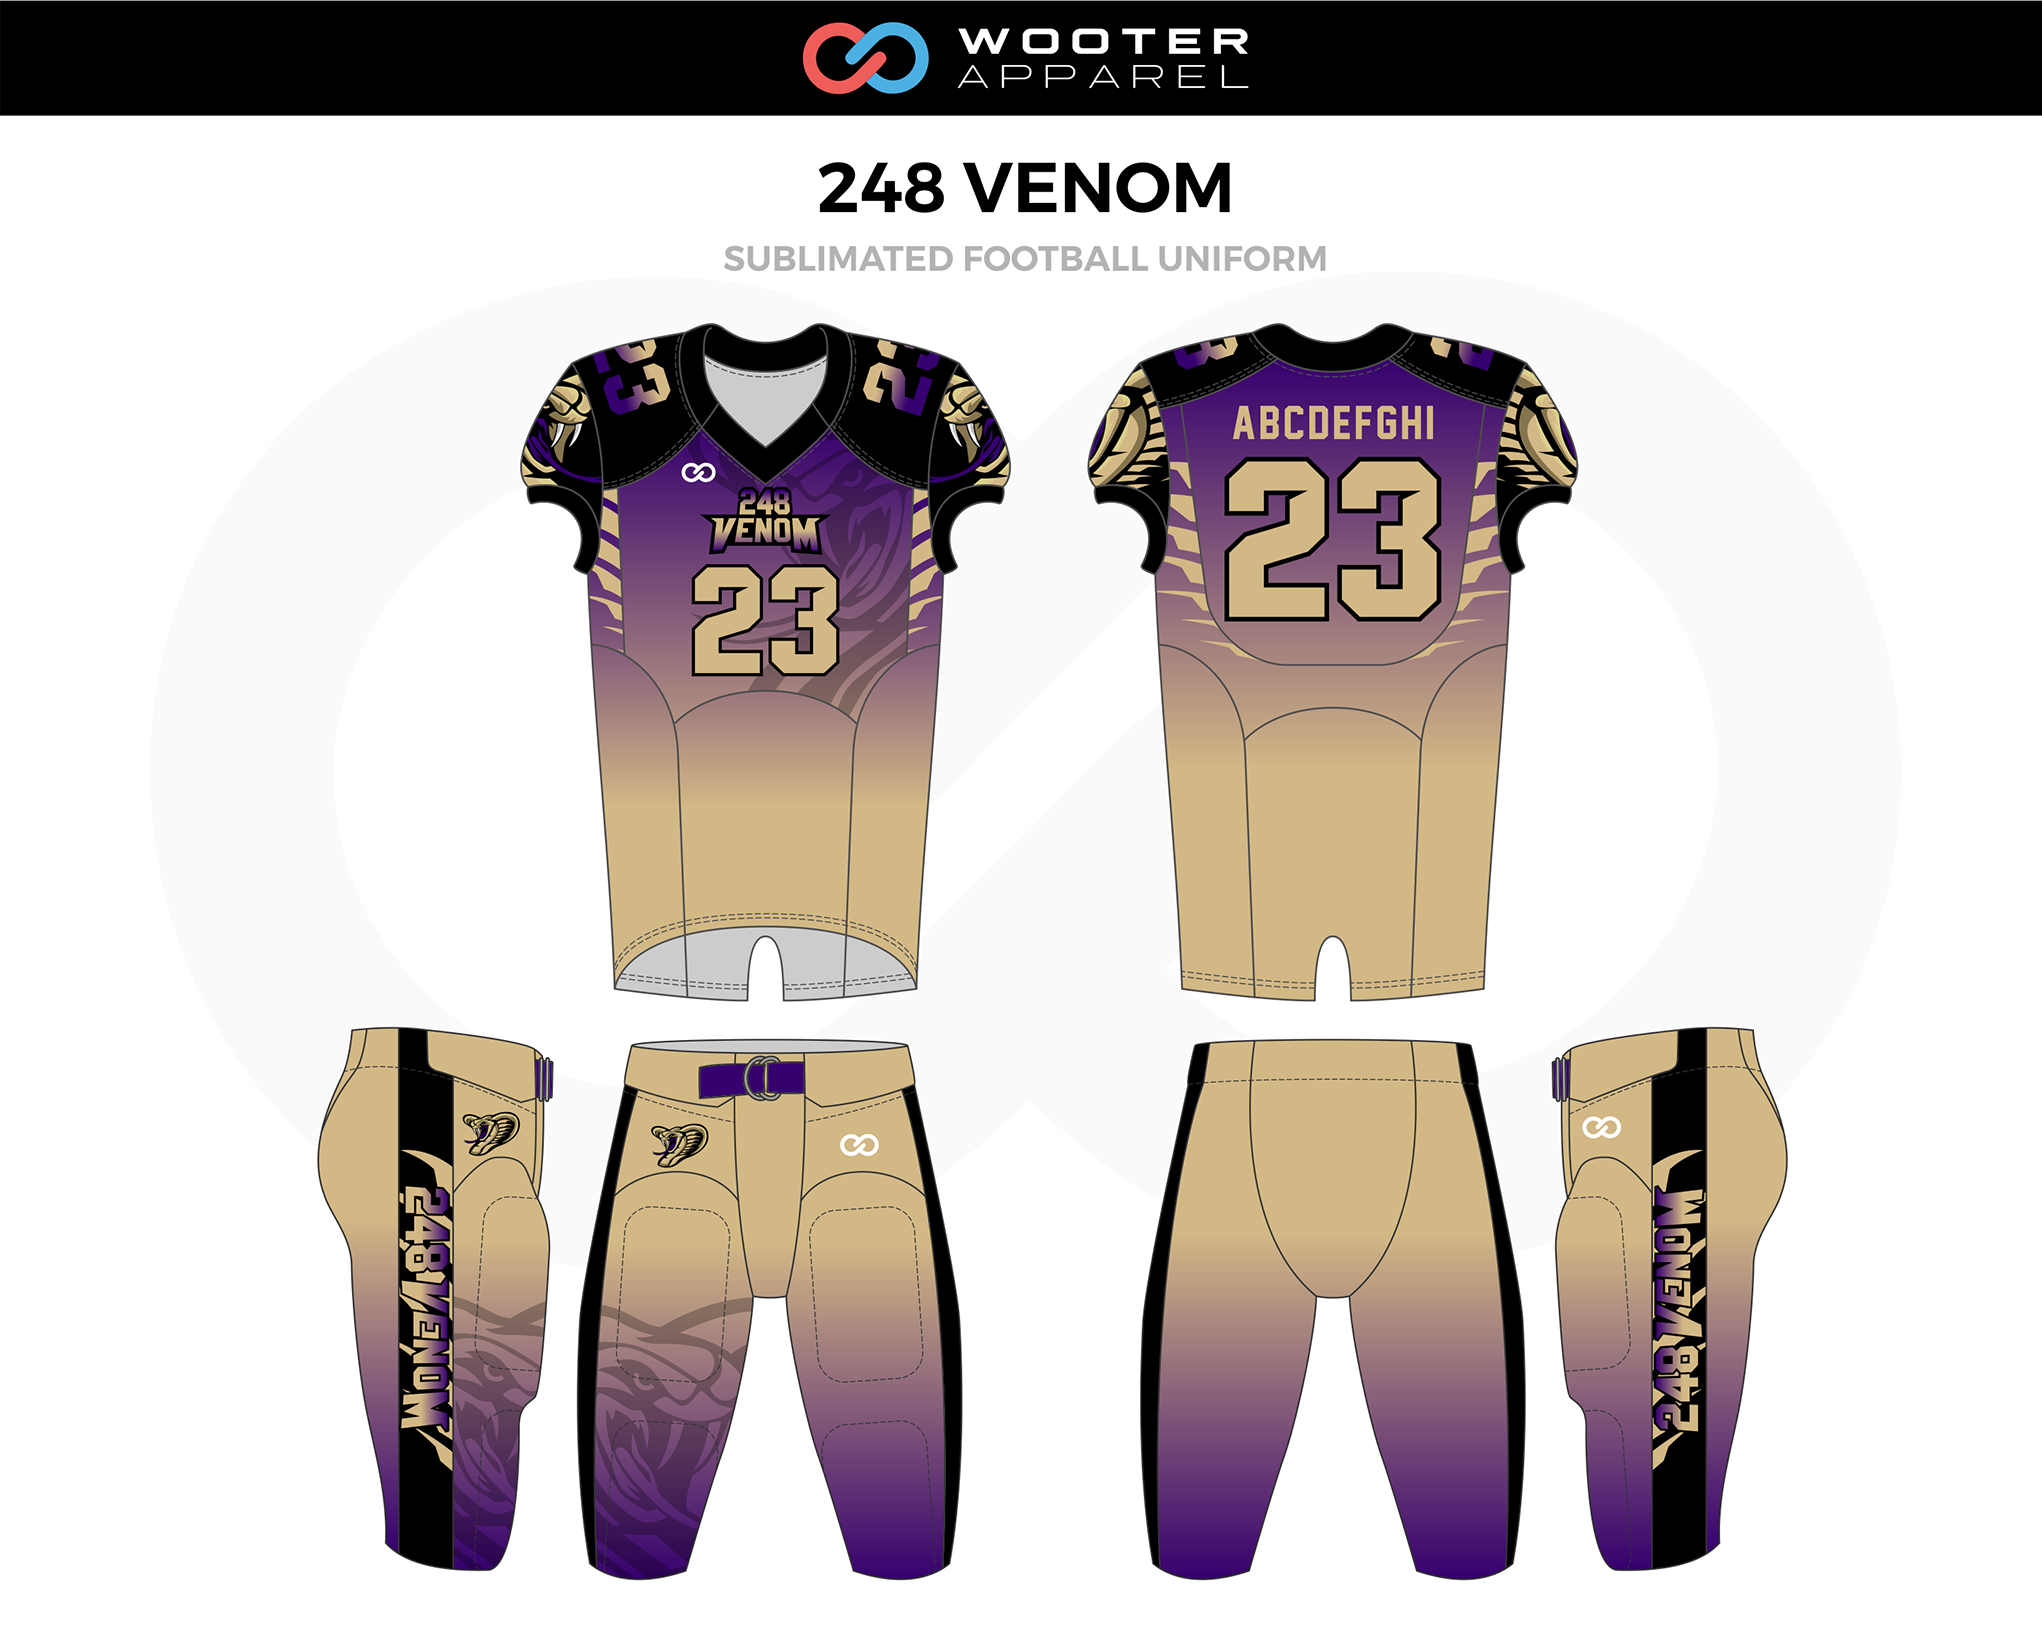 03cd38684e7 Football Designs — Wooter Apparel | Team Uniforms and Custom Sportswear